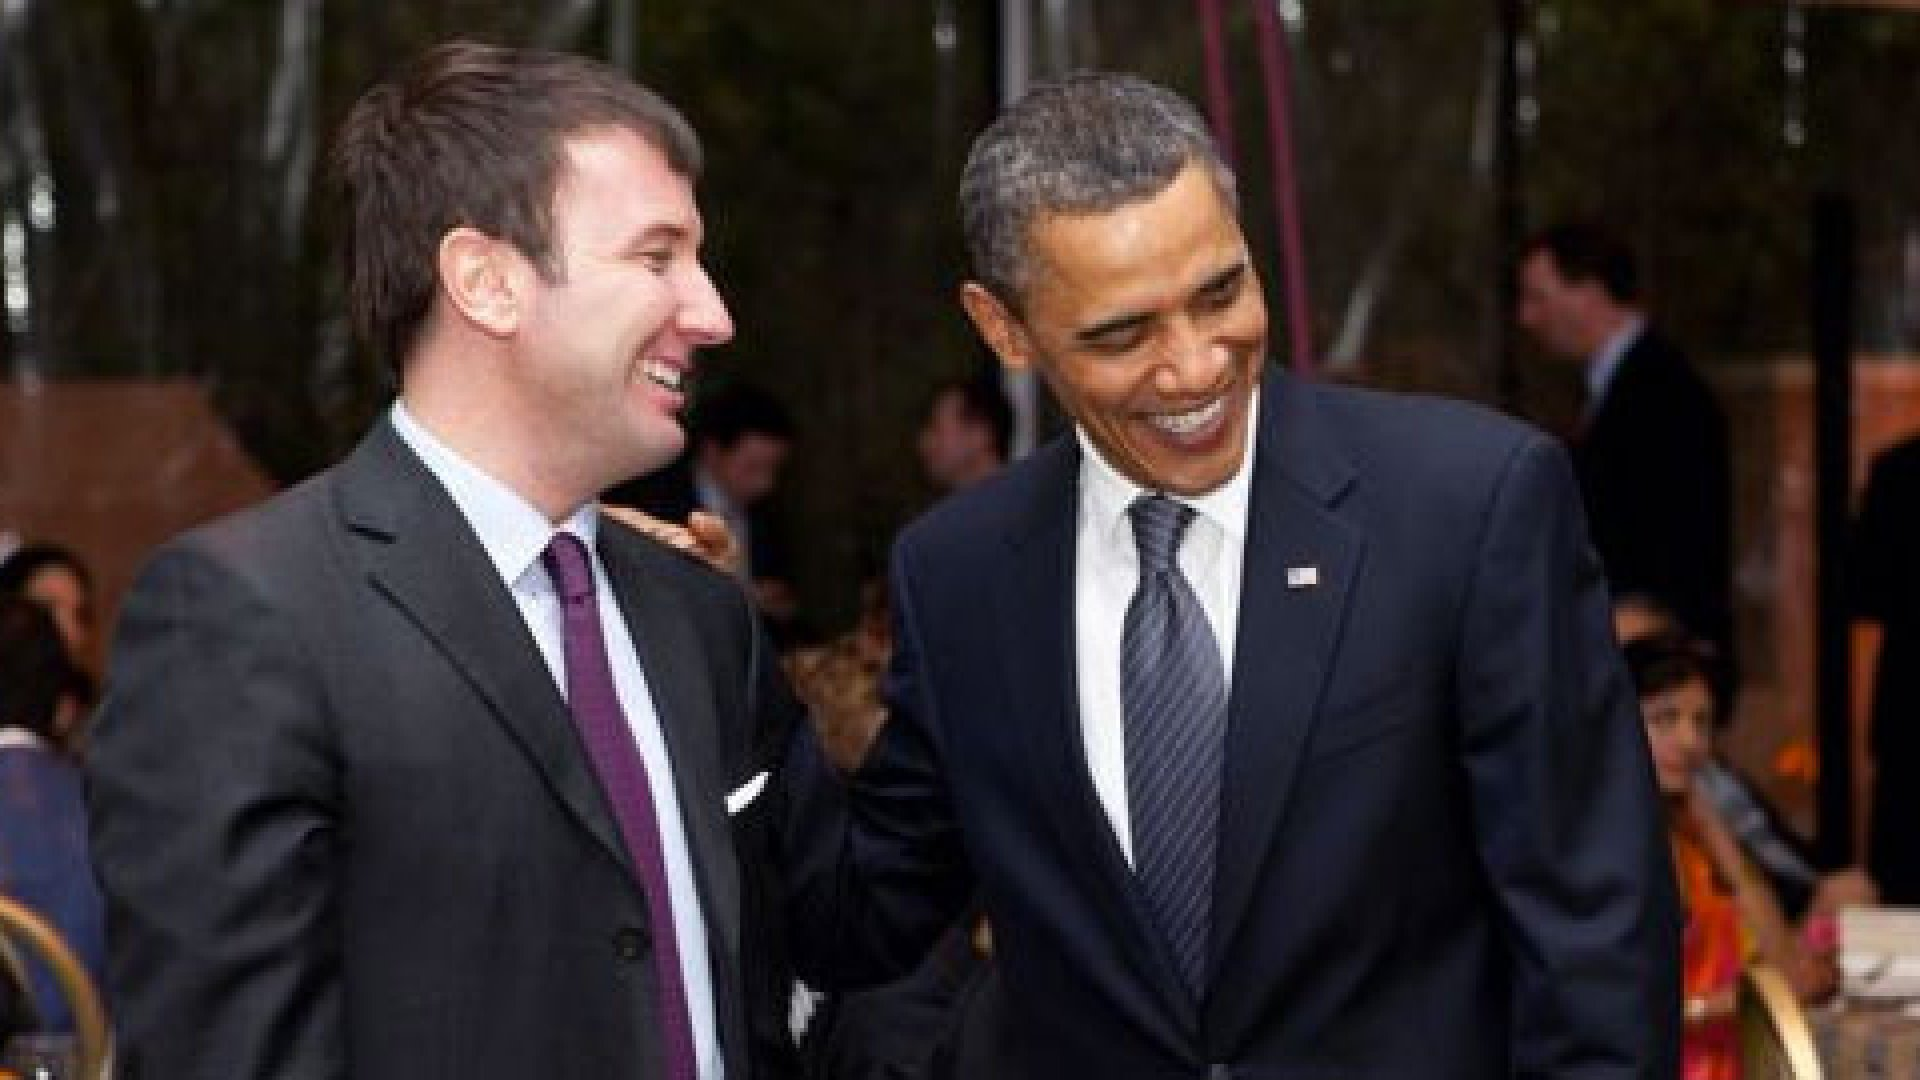 Jon Burgstone, managing director at Symbol Capital, with President Barack Obama